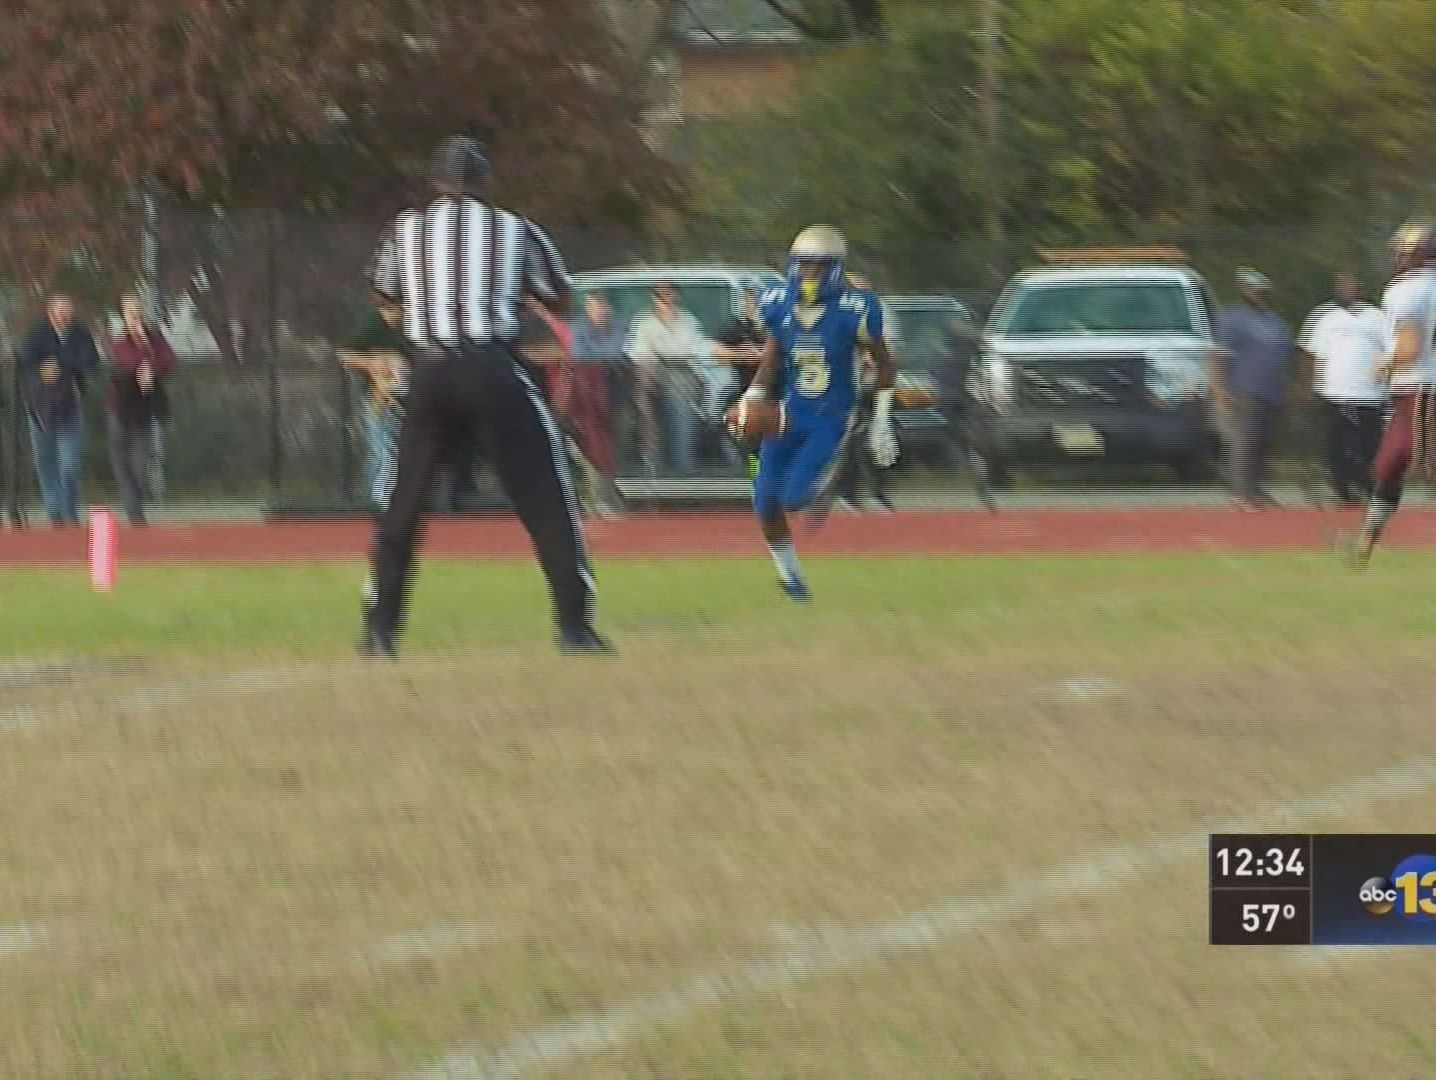 Phoebus tops Poquoson in overtime 31-24 in the Group 3A Playoffs